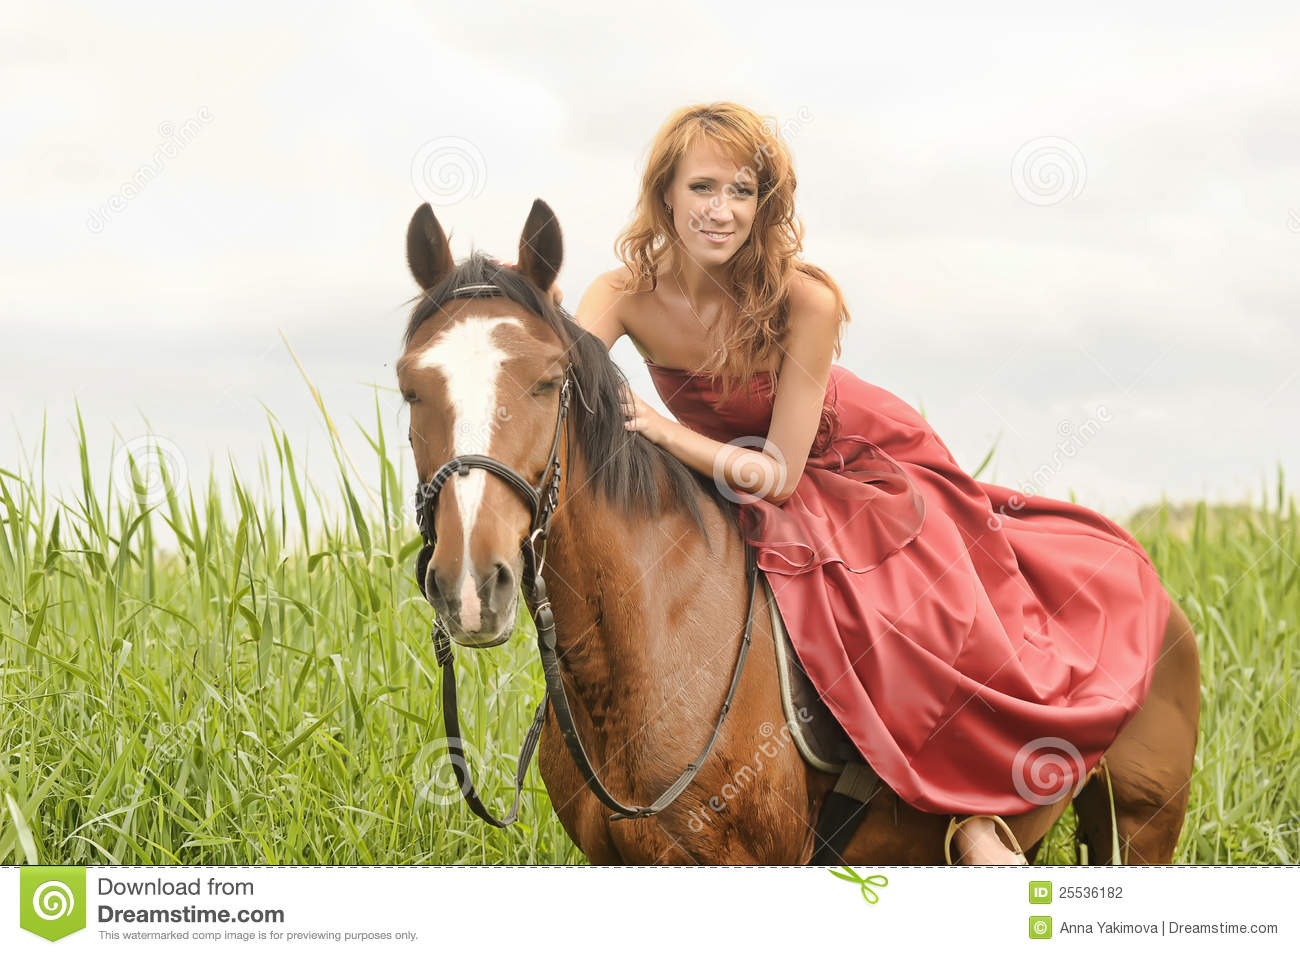 Can Femme et cheval speaking, would